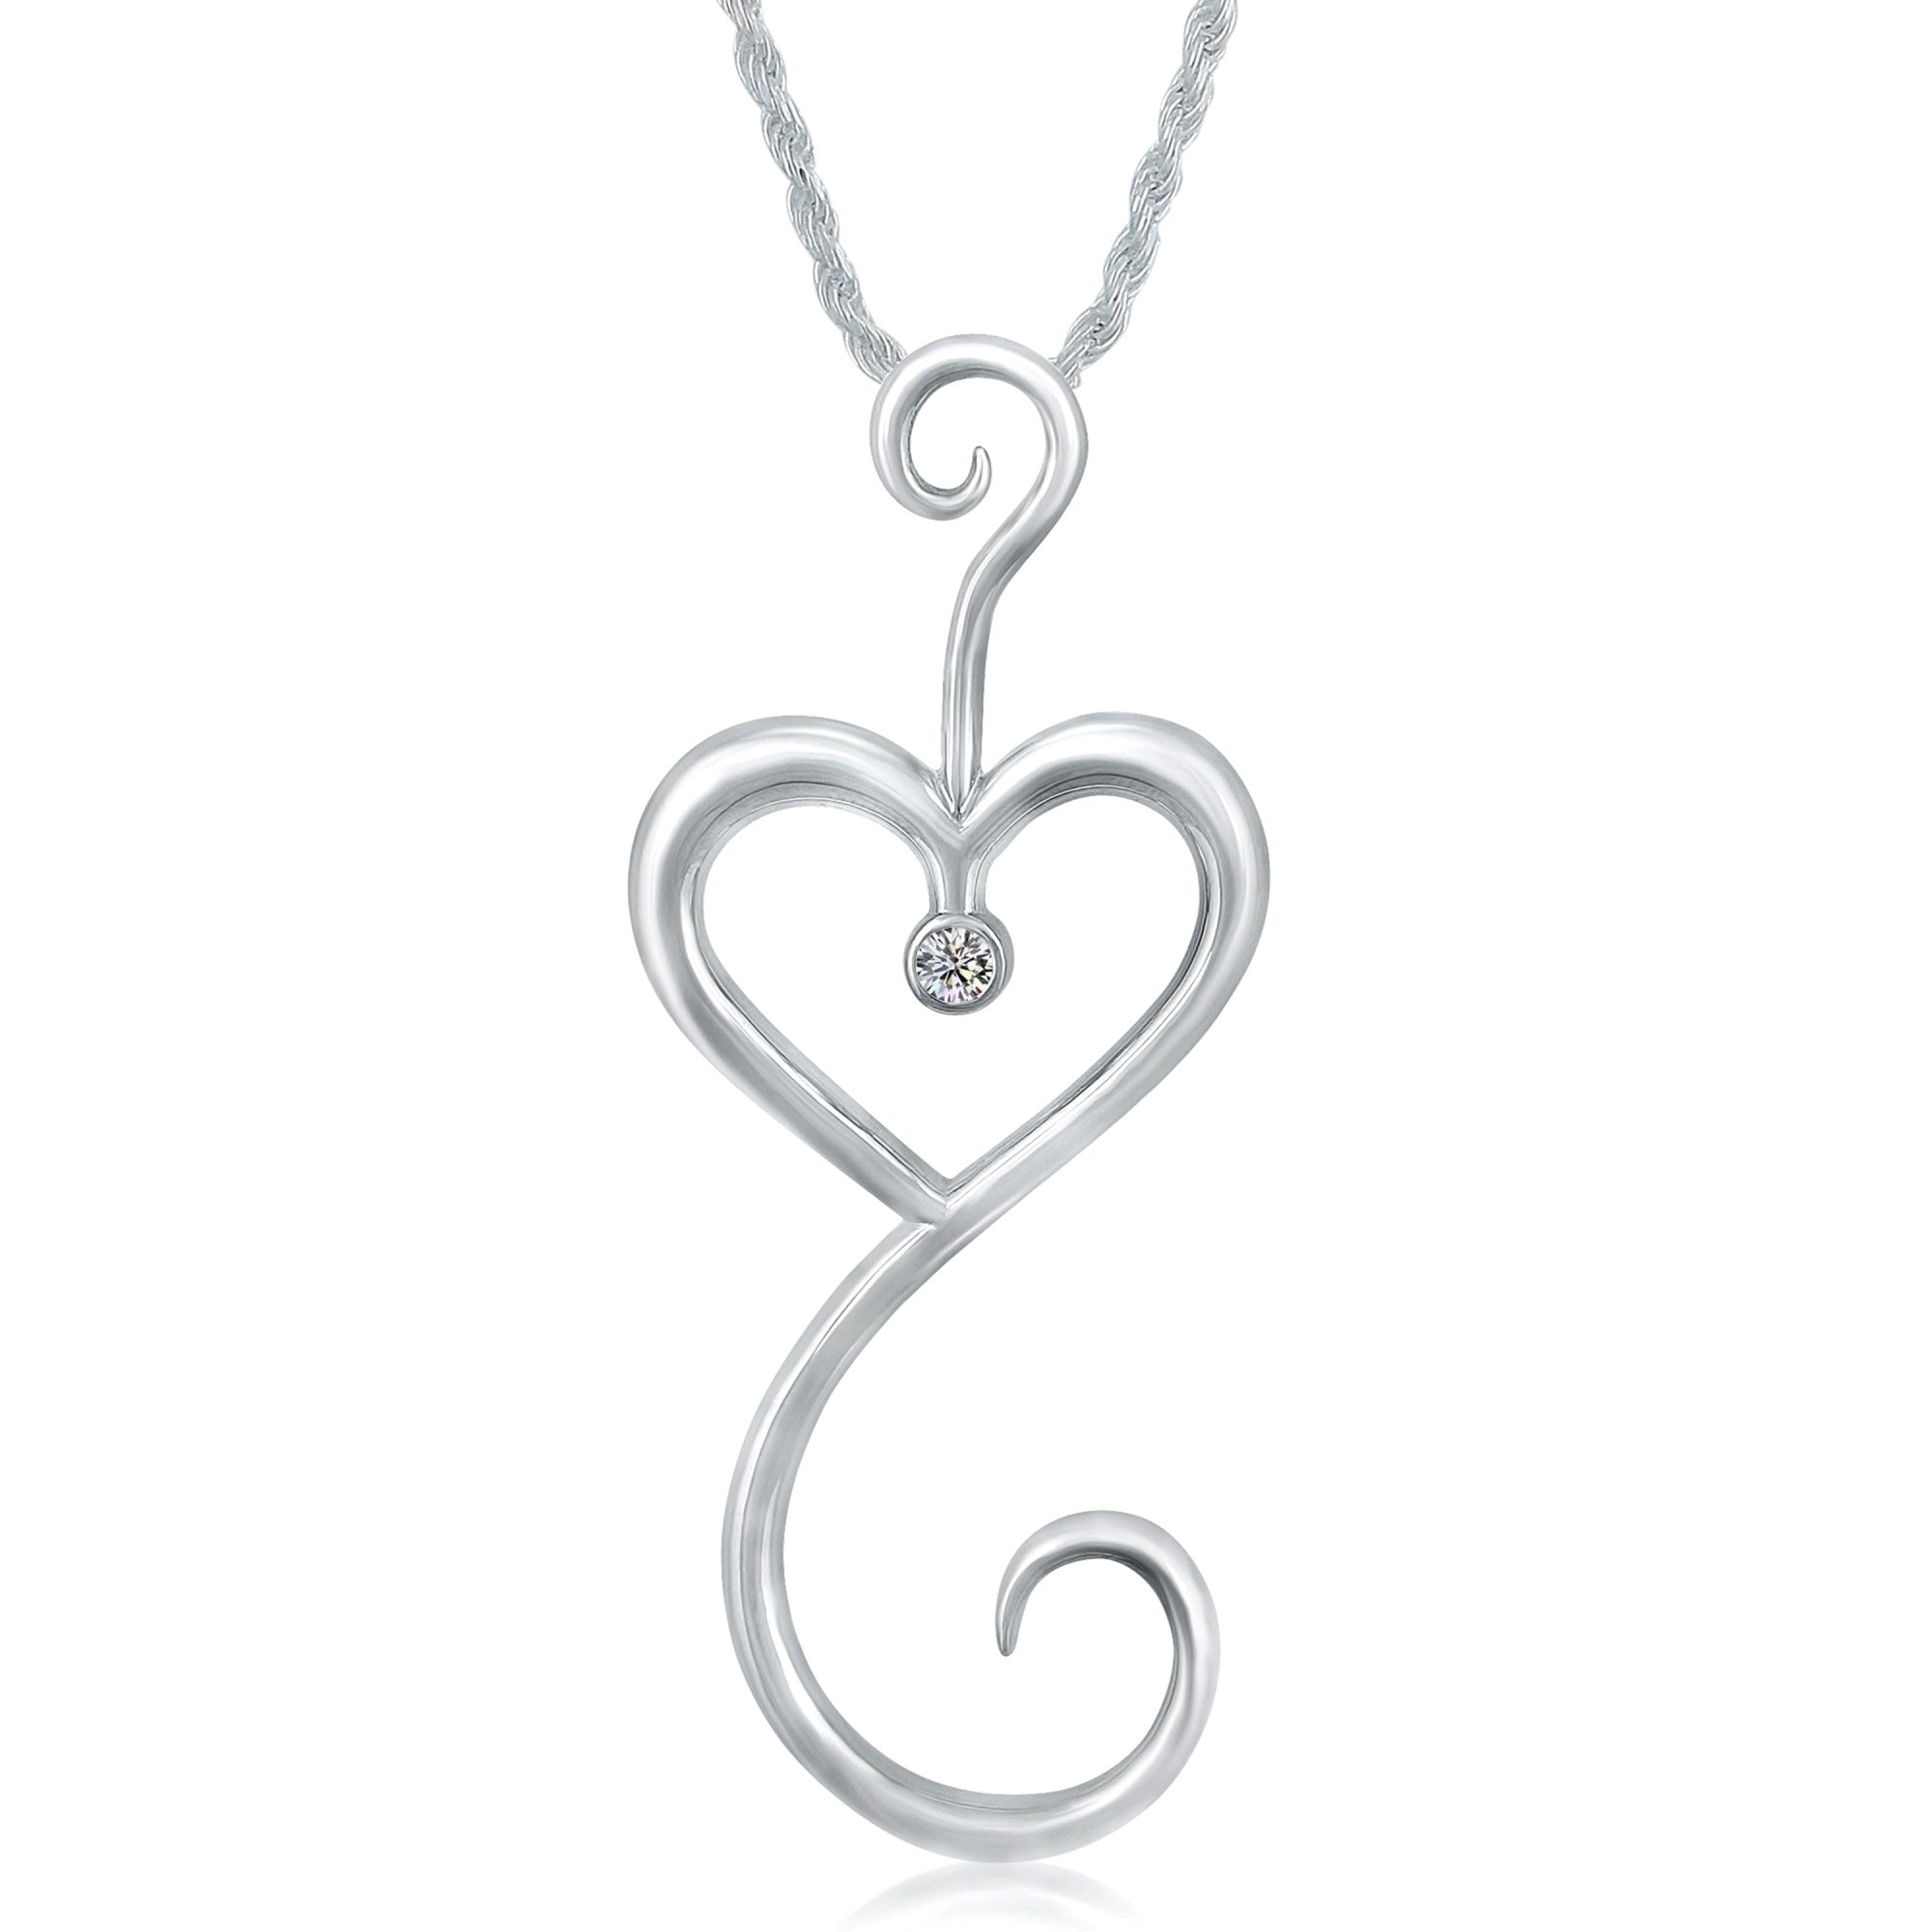 Intrikit Heart -Solid Sterling *Non Tarnish* Silver .925 with a 3mm White Sapphire Center Stone